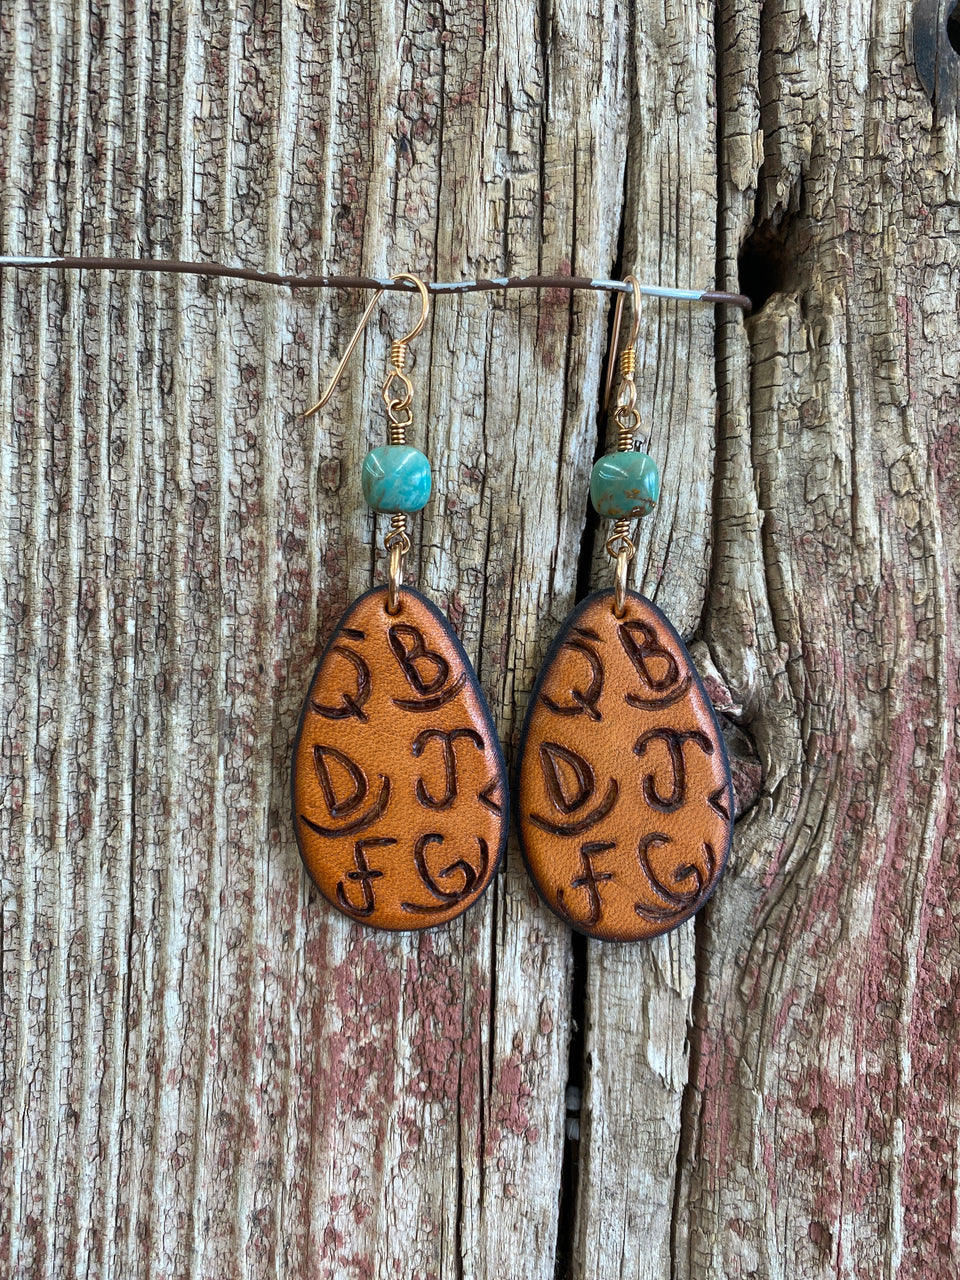 17148 Branded Brand Leather Teardrop & Kingman Turquoise Earrings